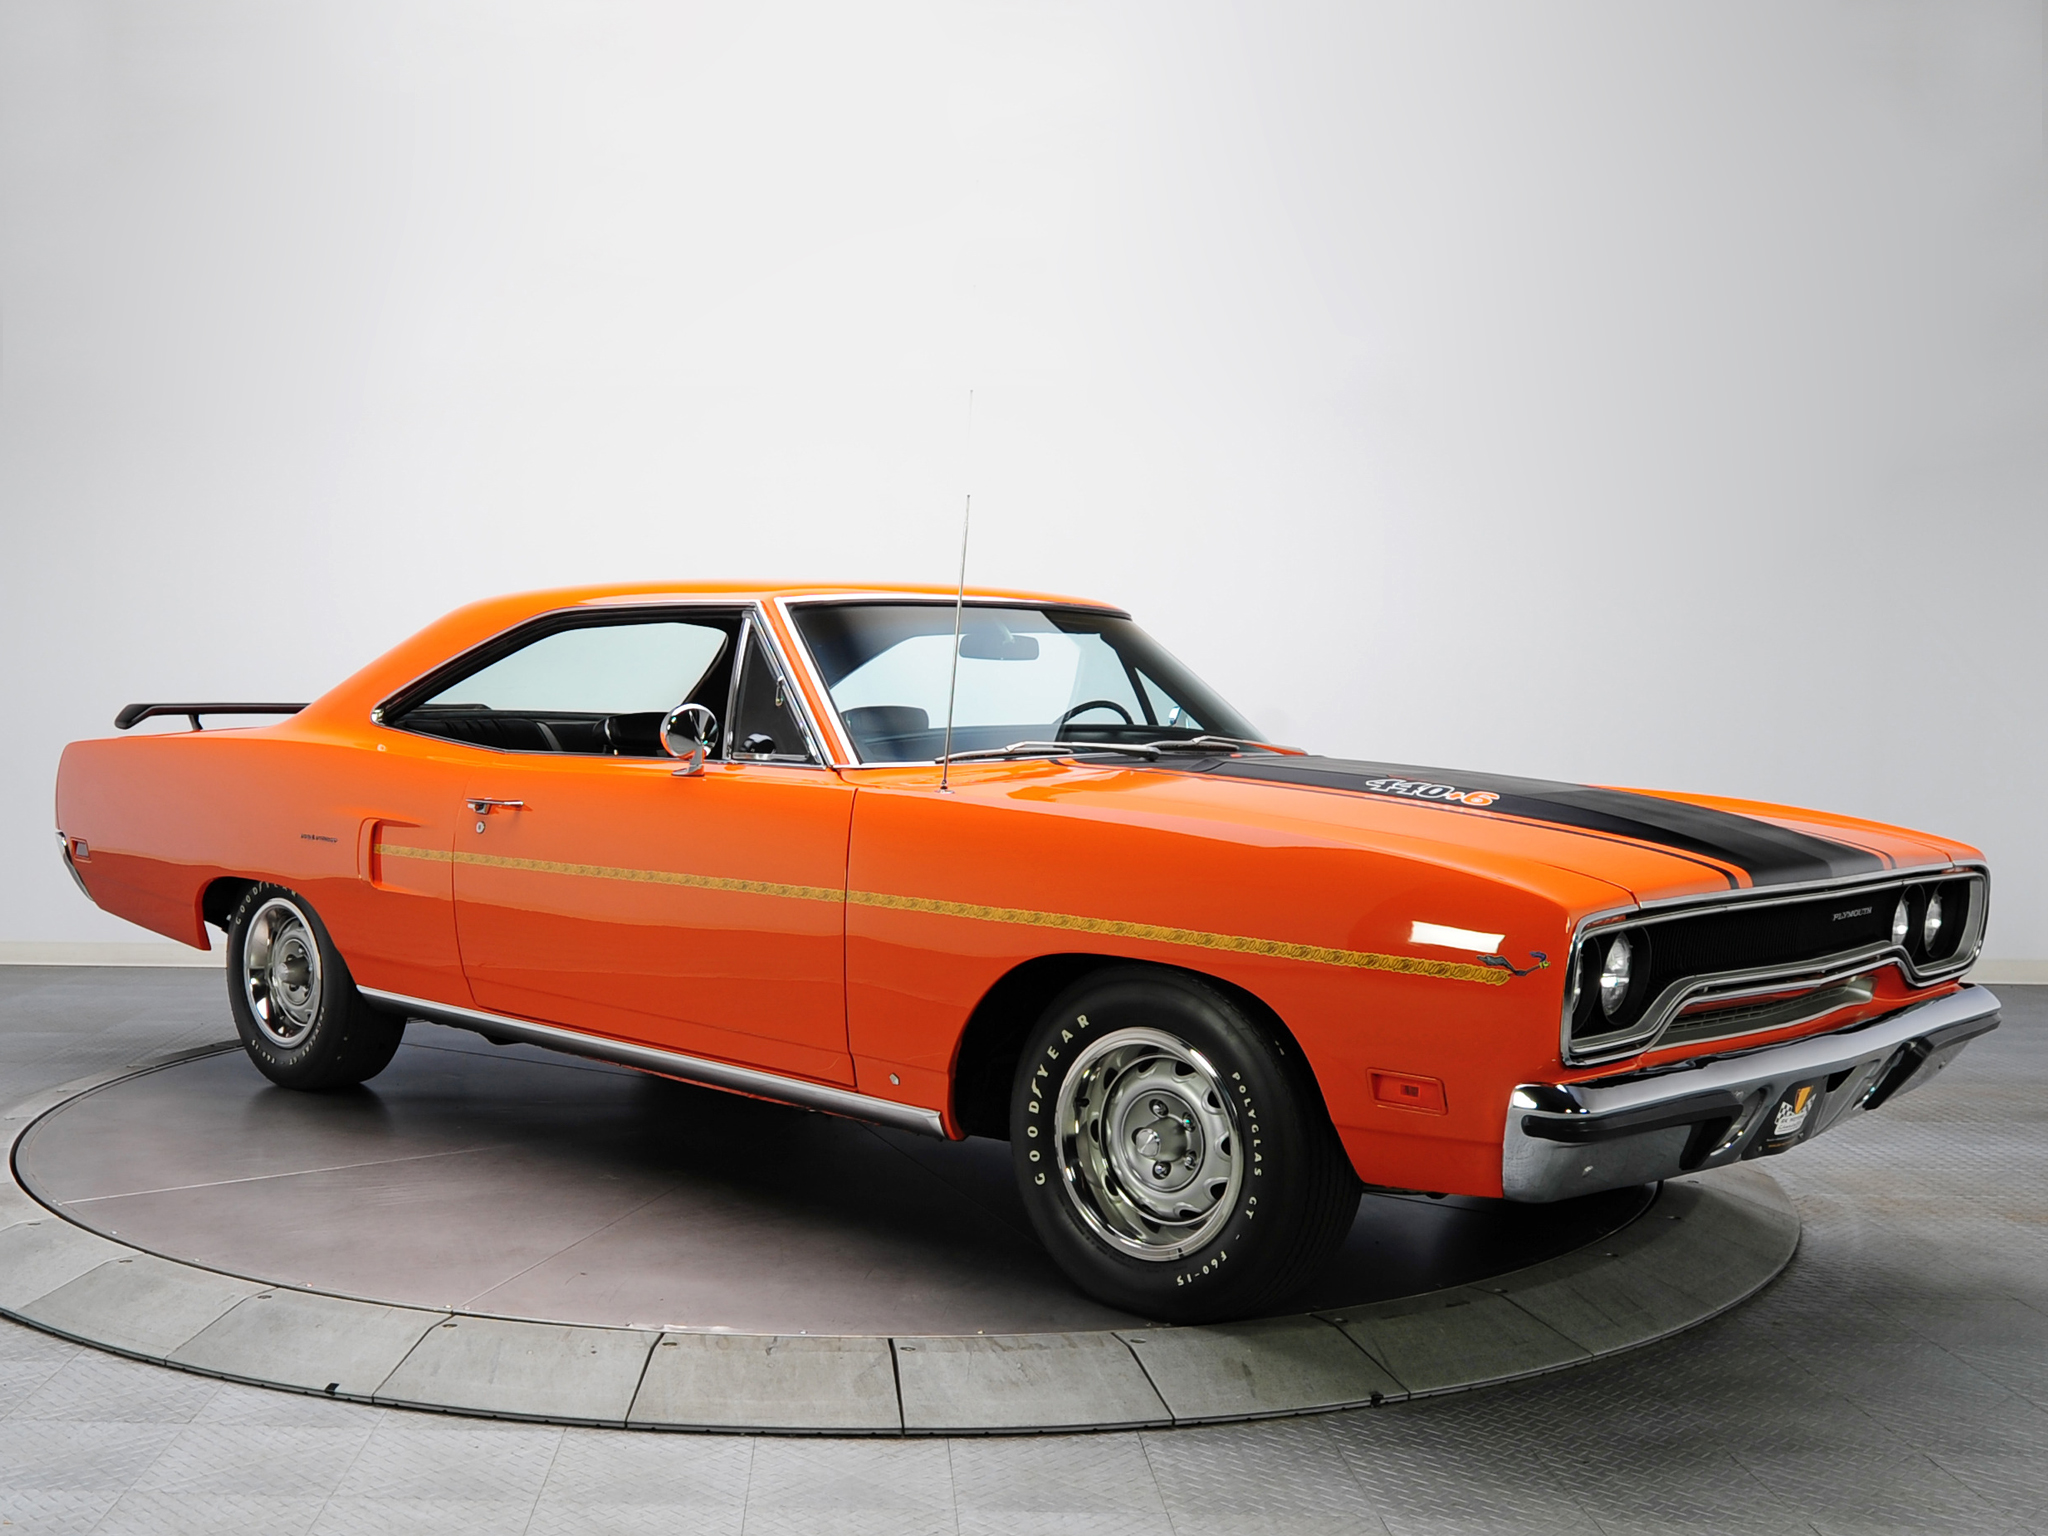 Top 10 1960s Muscle Cars further Charger together with 1971 PLYMOUTH CUDA 2 DOOR HARDTOP 139595 in addition 1971 DODGE CHALLENGER CUSTOM 181219 further Plymouth Road Runner 1972. on 440 six pack engine